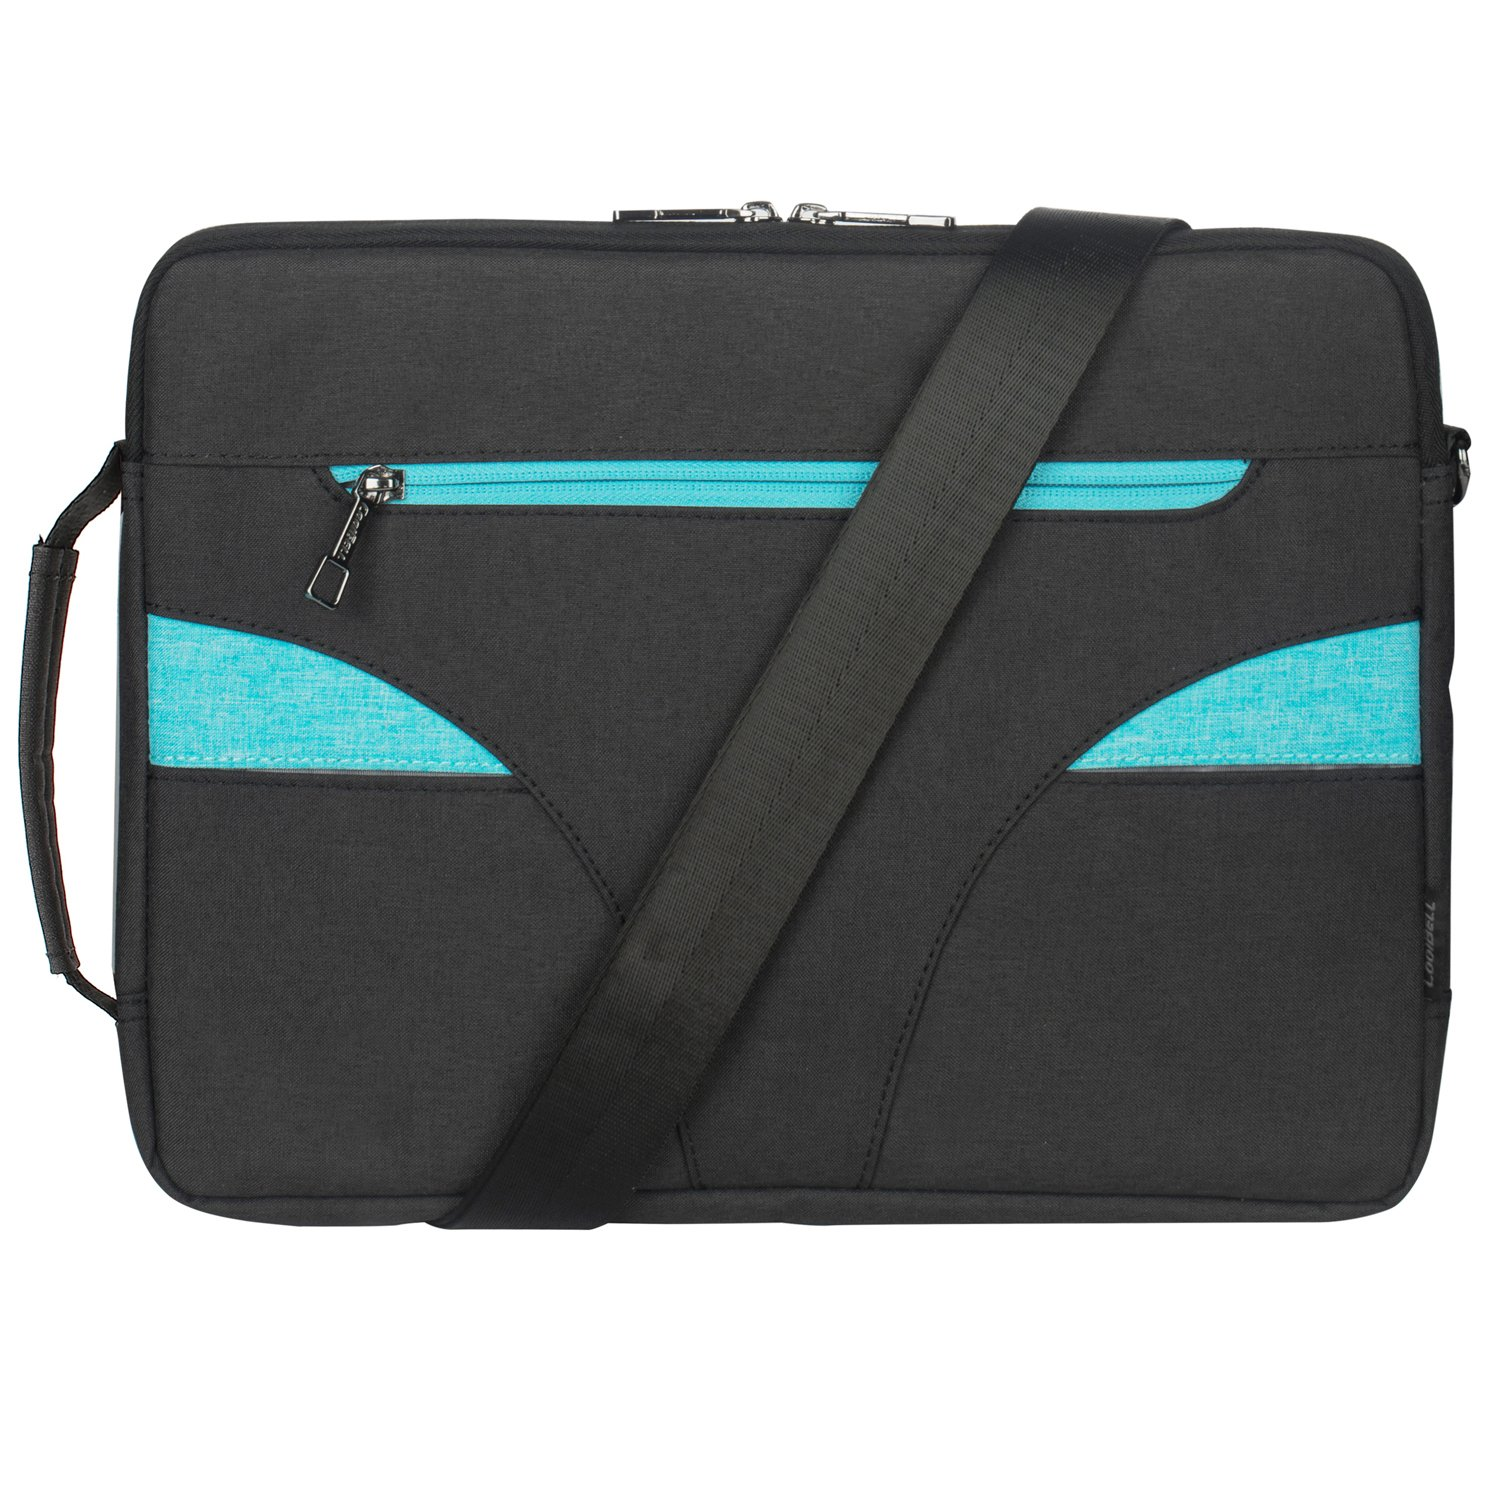 CoolBell 15.6 Inch Laptop Case With Handle Macbook Shoulder Bag Ultra-book Sleeve Bag Include Shoulder Strap (Black)